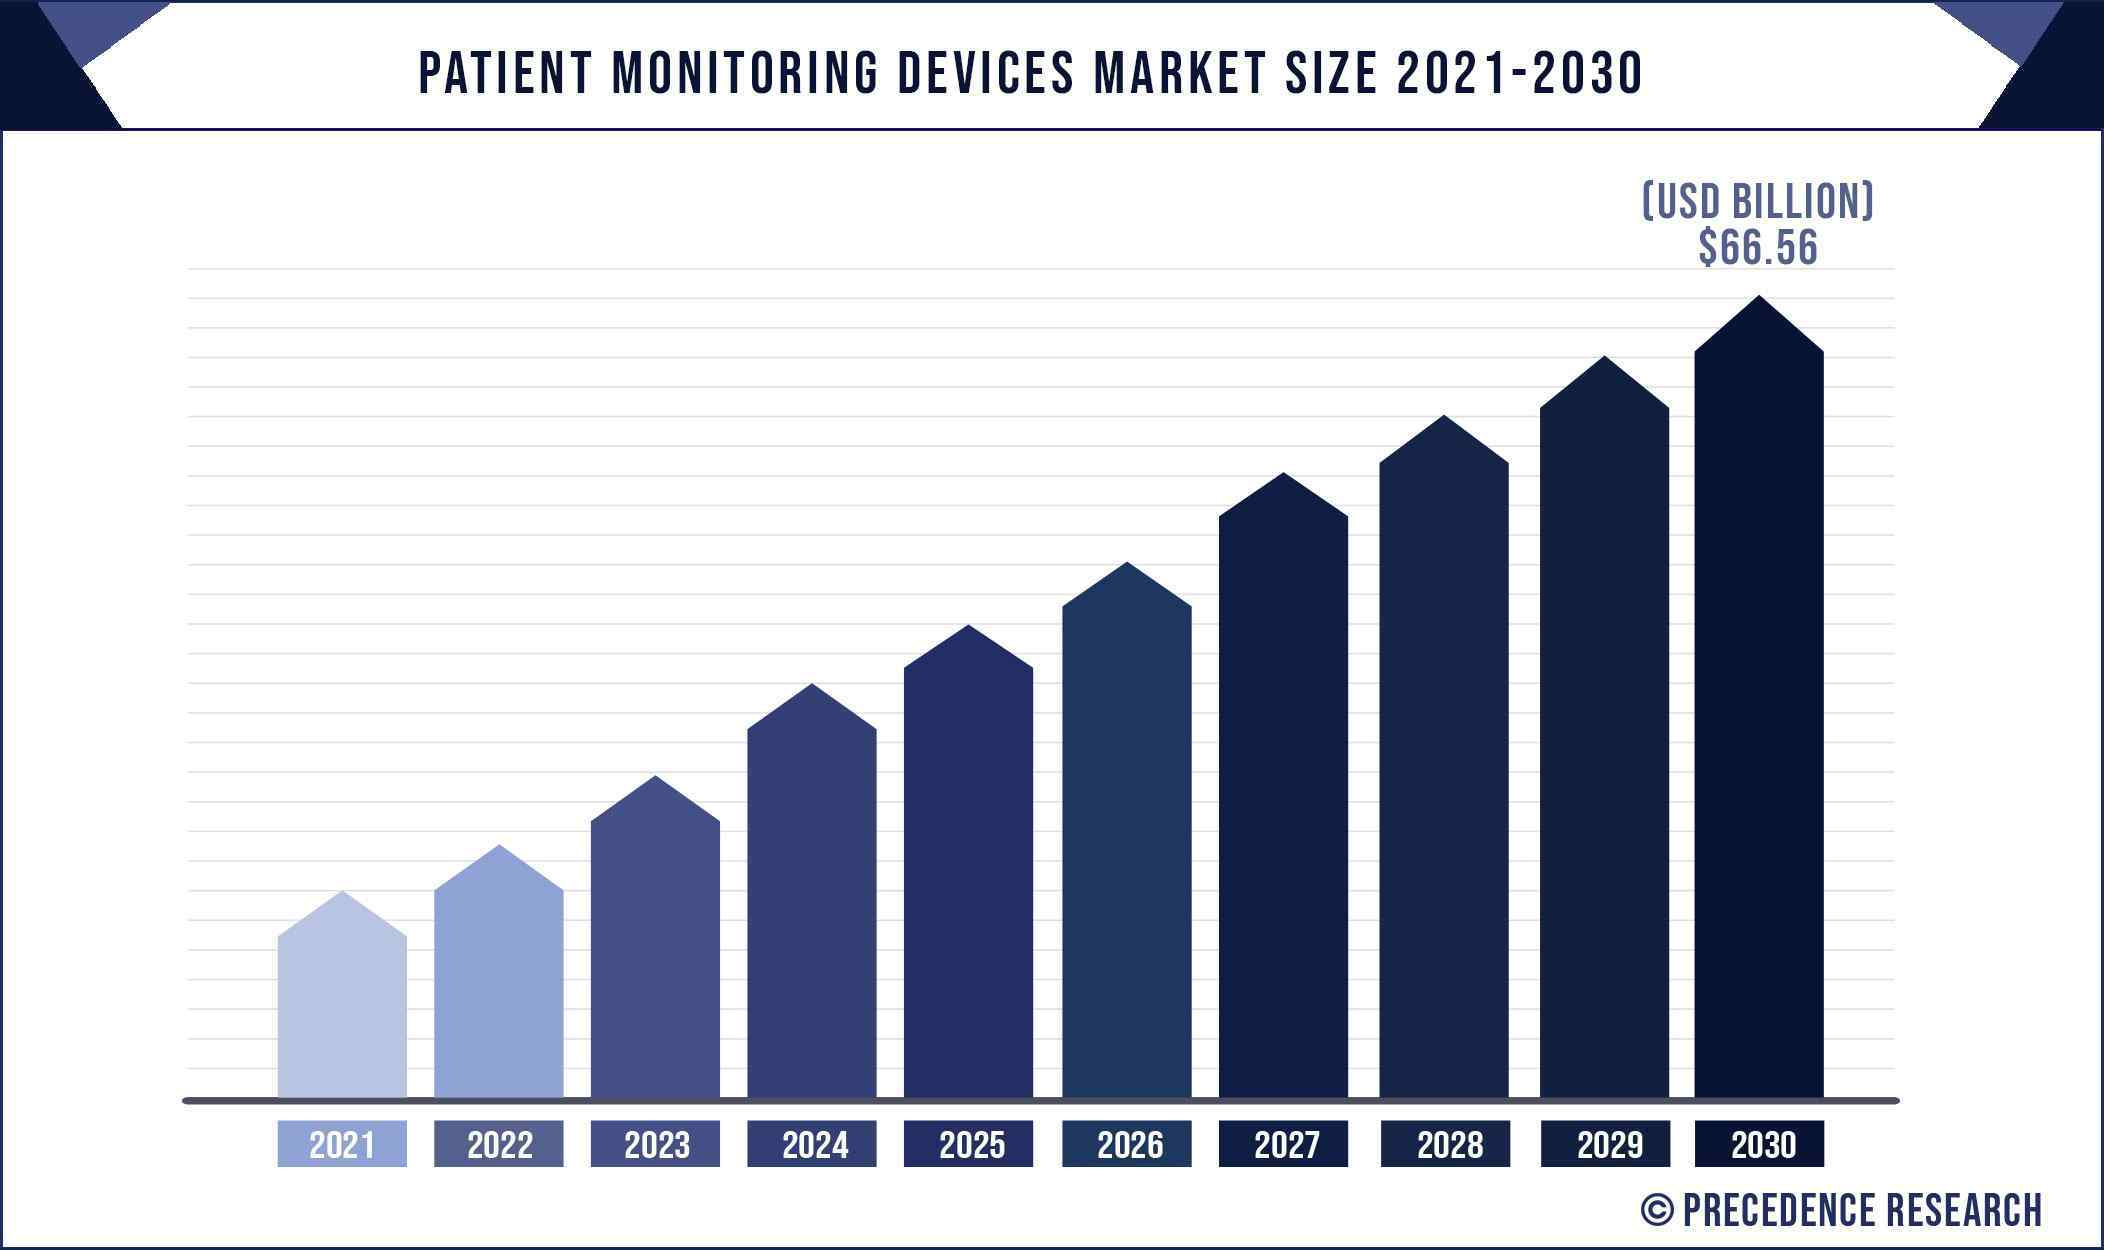 Patient Monitoring Devices Market Size 2021 to 2030